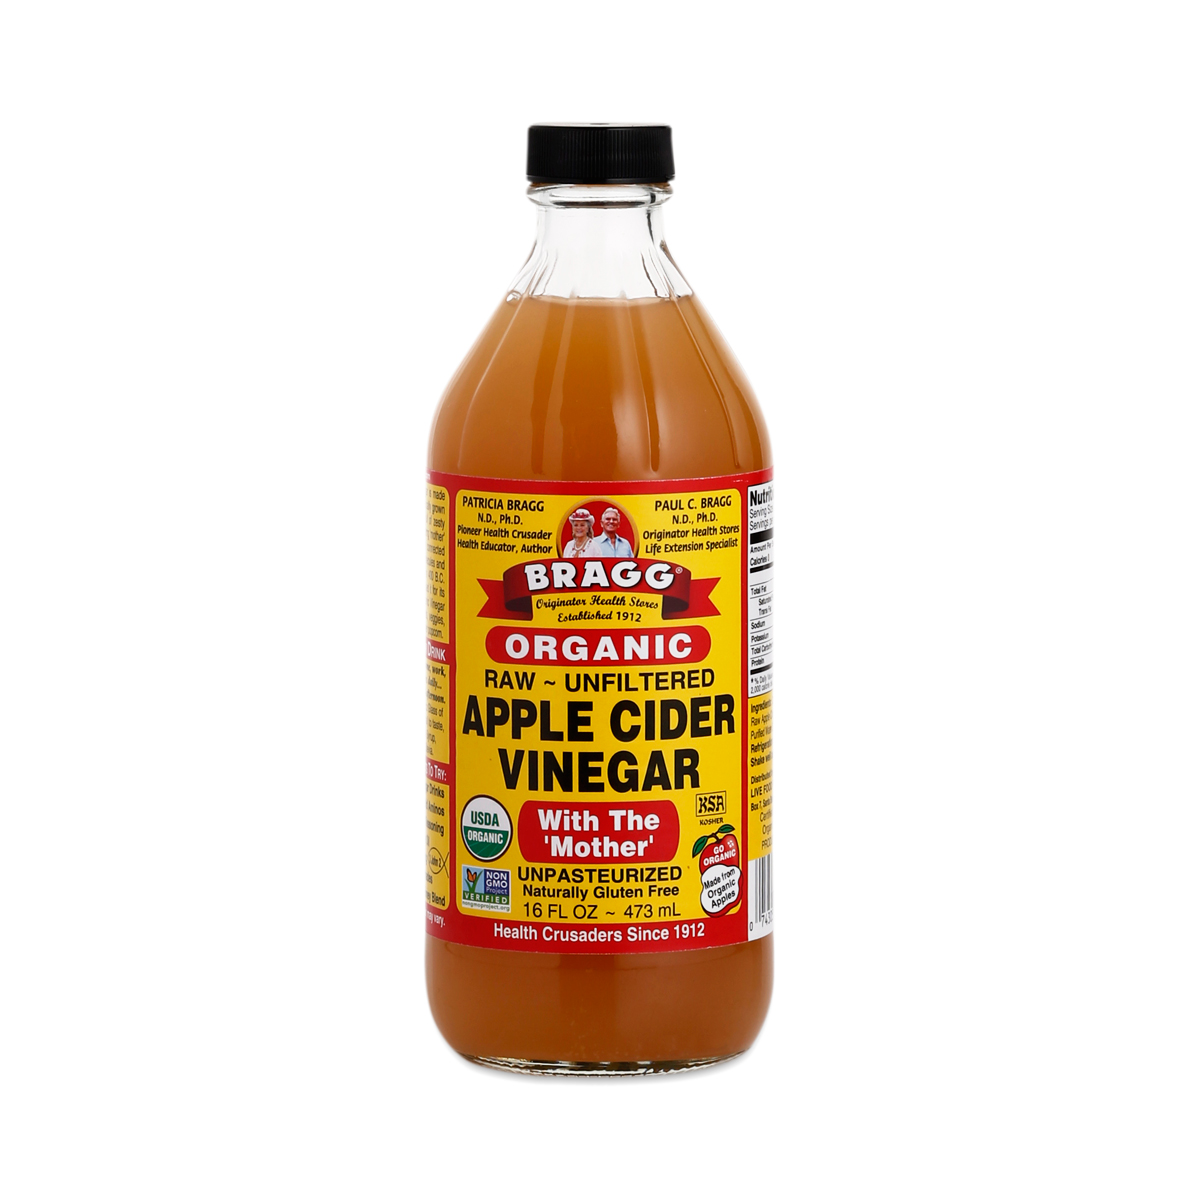 Spice Up Salads And Vegetables With Bragg Organic Apple Cider Vinegar Or Stock It In Best Apple Cider Vinegar Organic Apple Cider Vinegar Organic Apple Cider